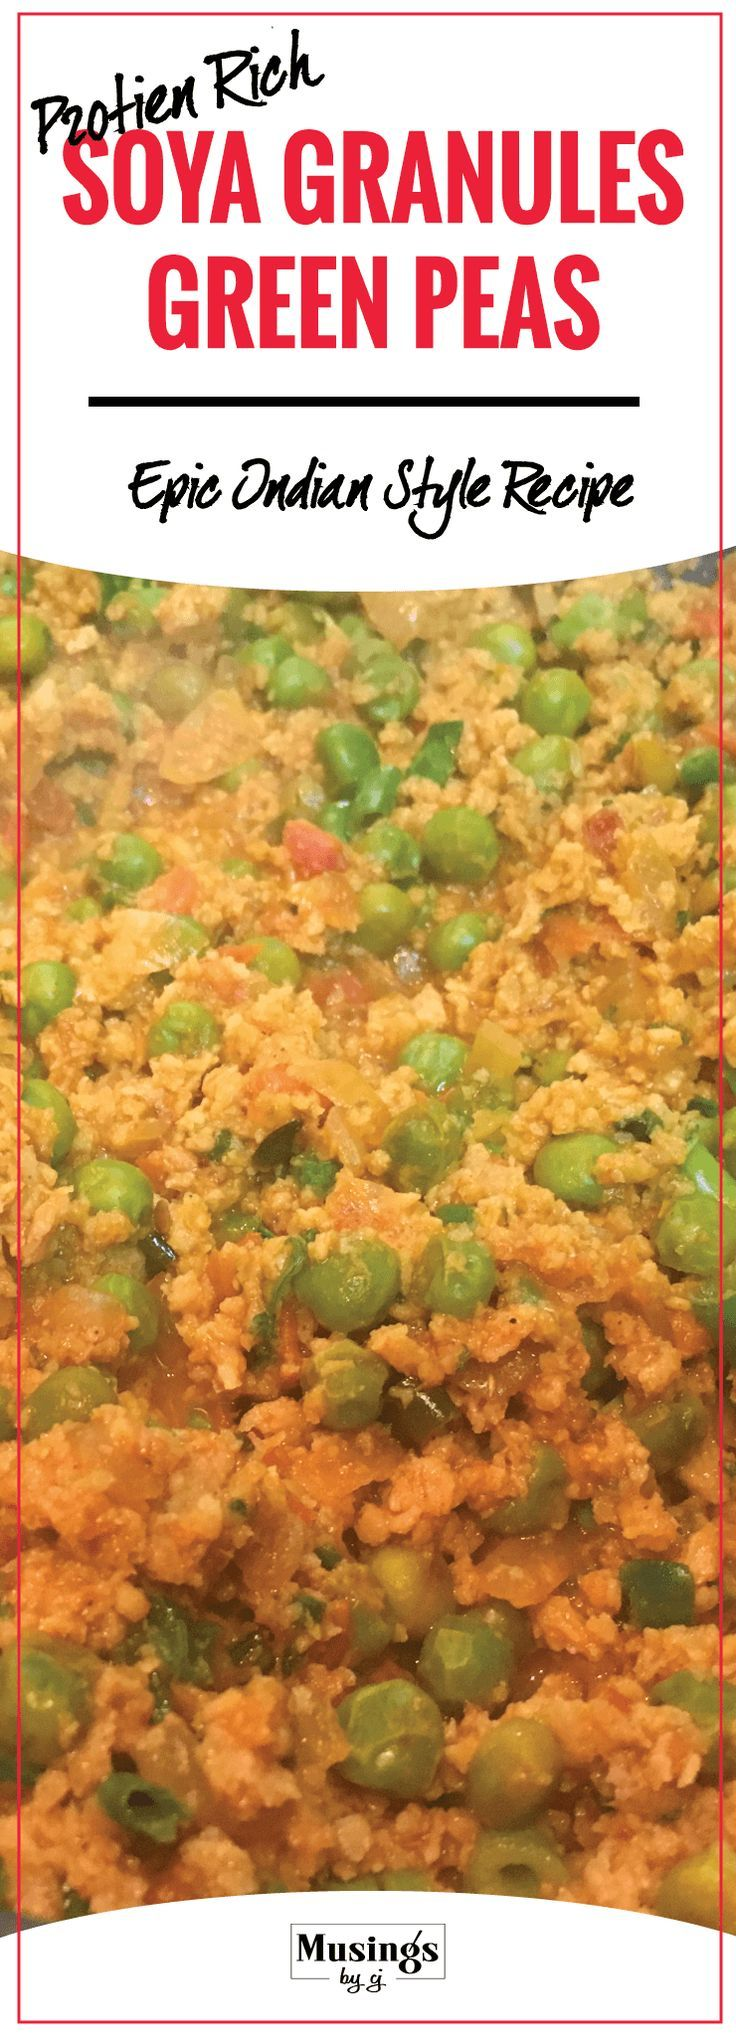 Learn how to make Healthy Dry Soya Granules and Green Peas. Completely Vegetarian and Protein Rich. Prepared in Indian Style.  It makes a healthy meal option for those wanting to lose weight. Soya acts as a meat substitute and is full of proteins.